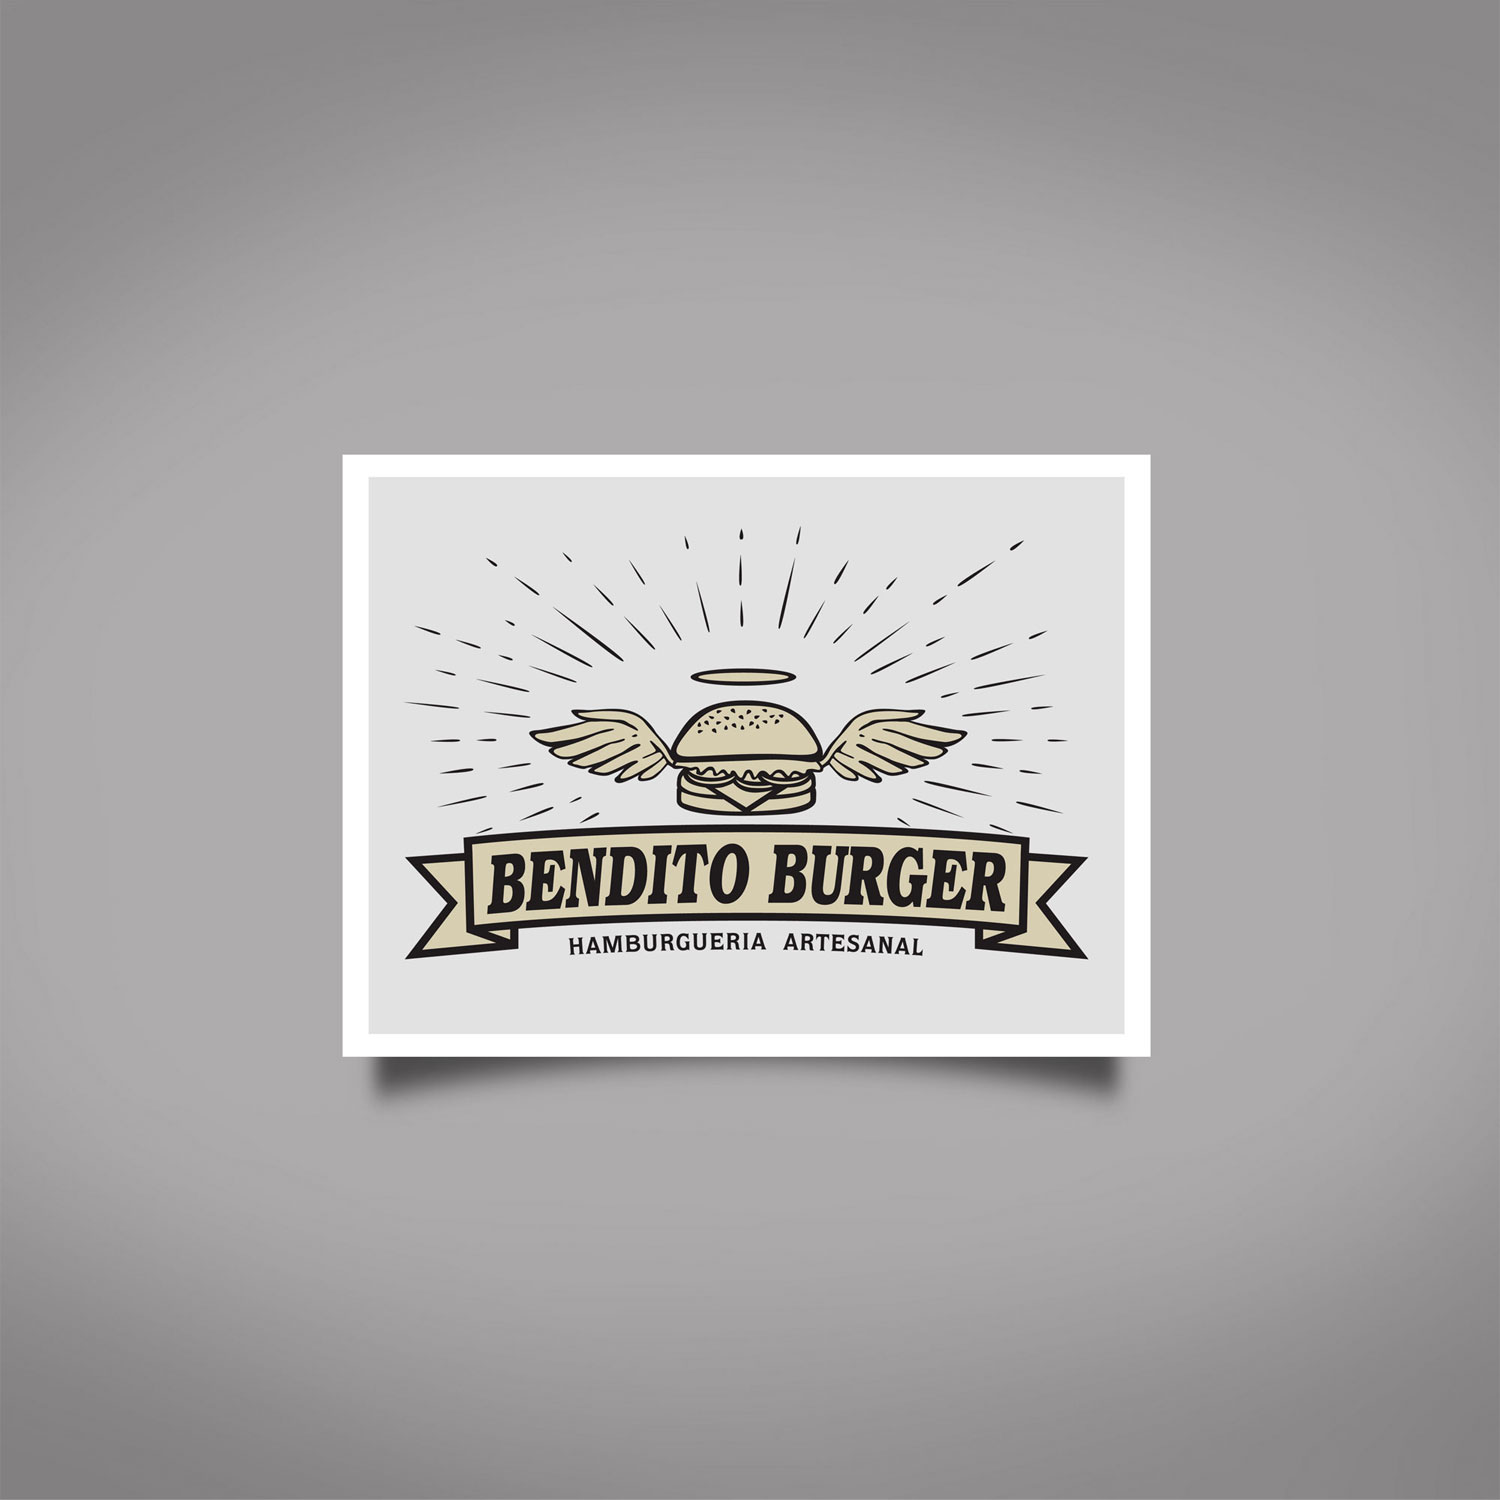 Logo Bendito Burger